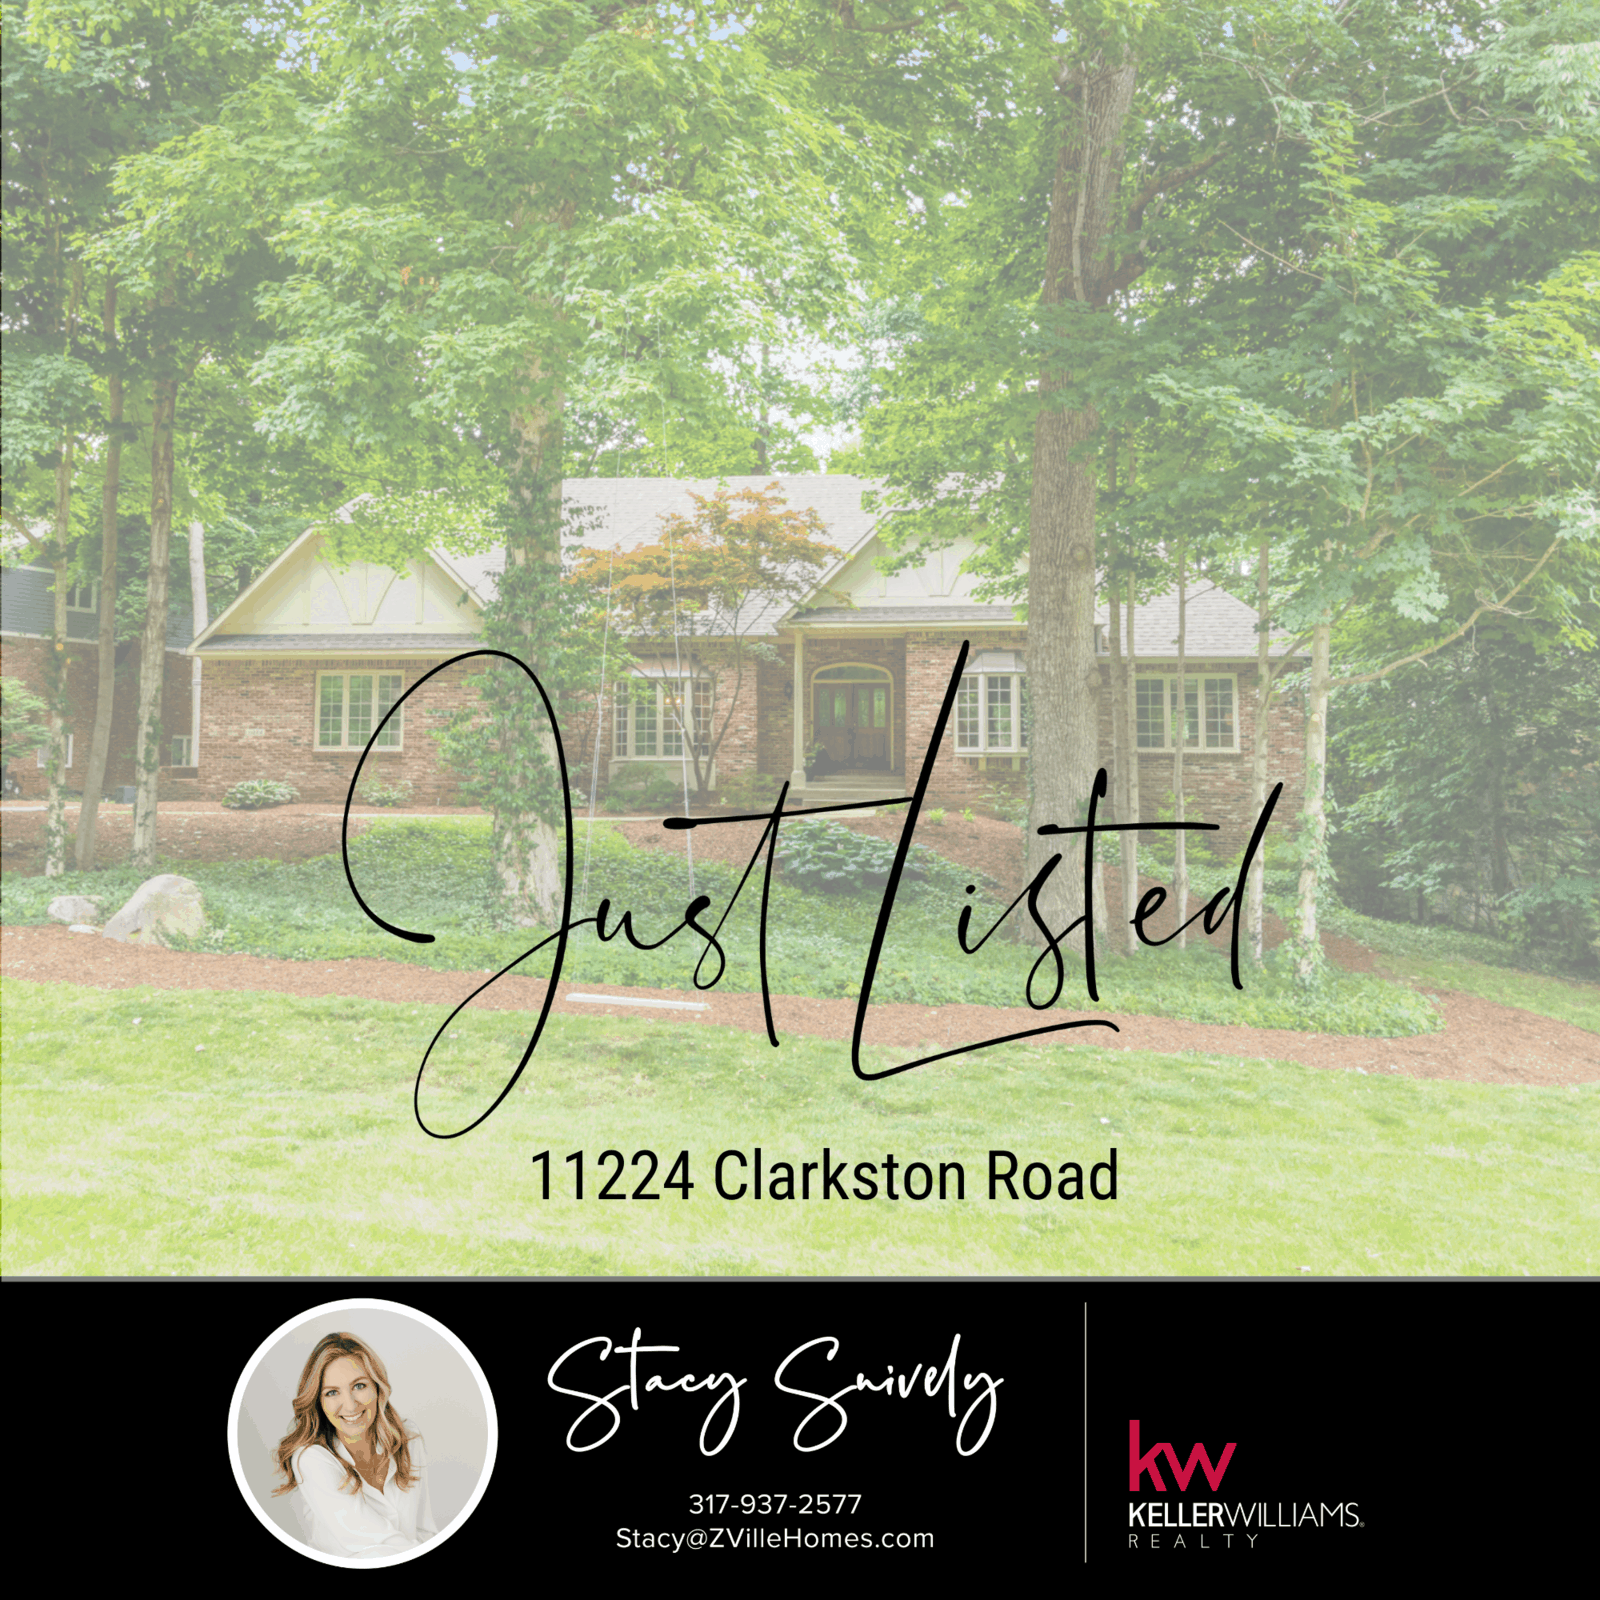 Clarkston Road - Just Listed